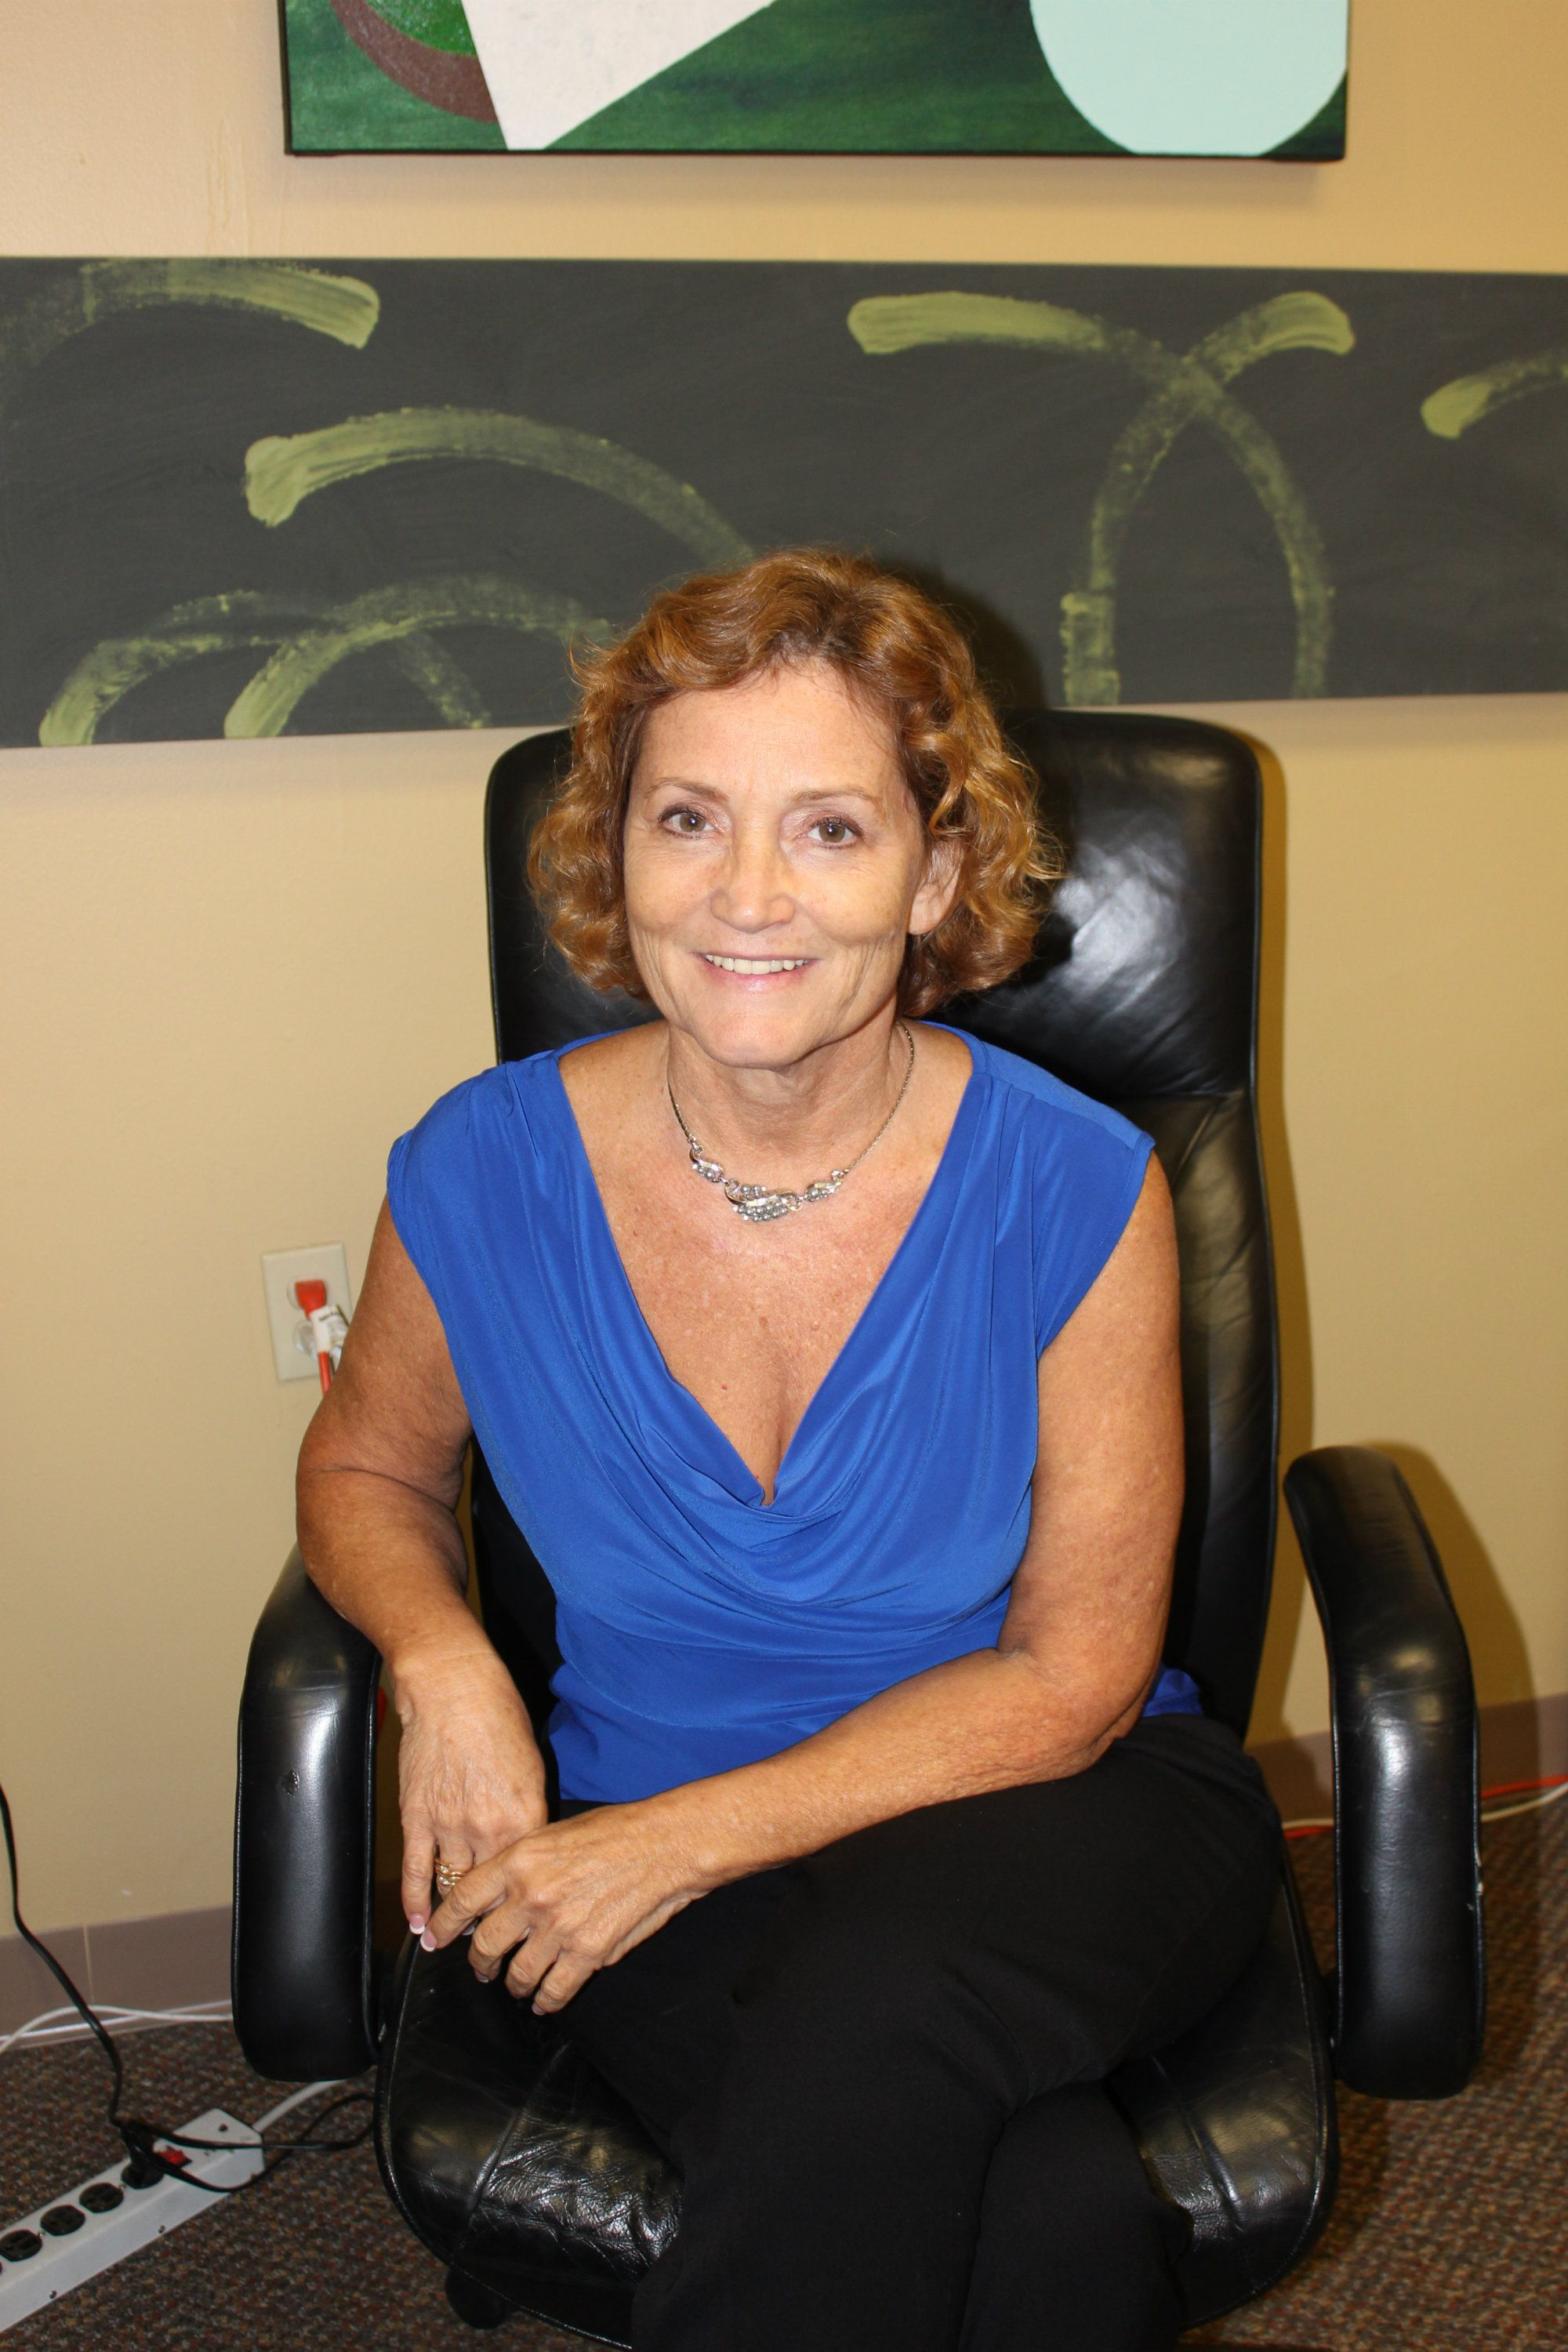 Bonnie barnes has joined the arc jacksonville as the